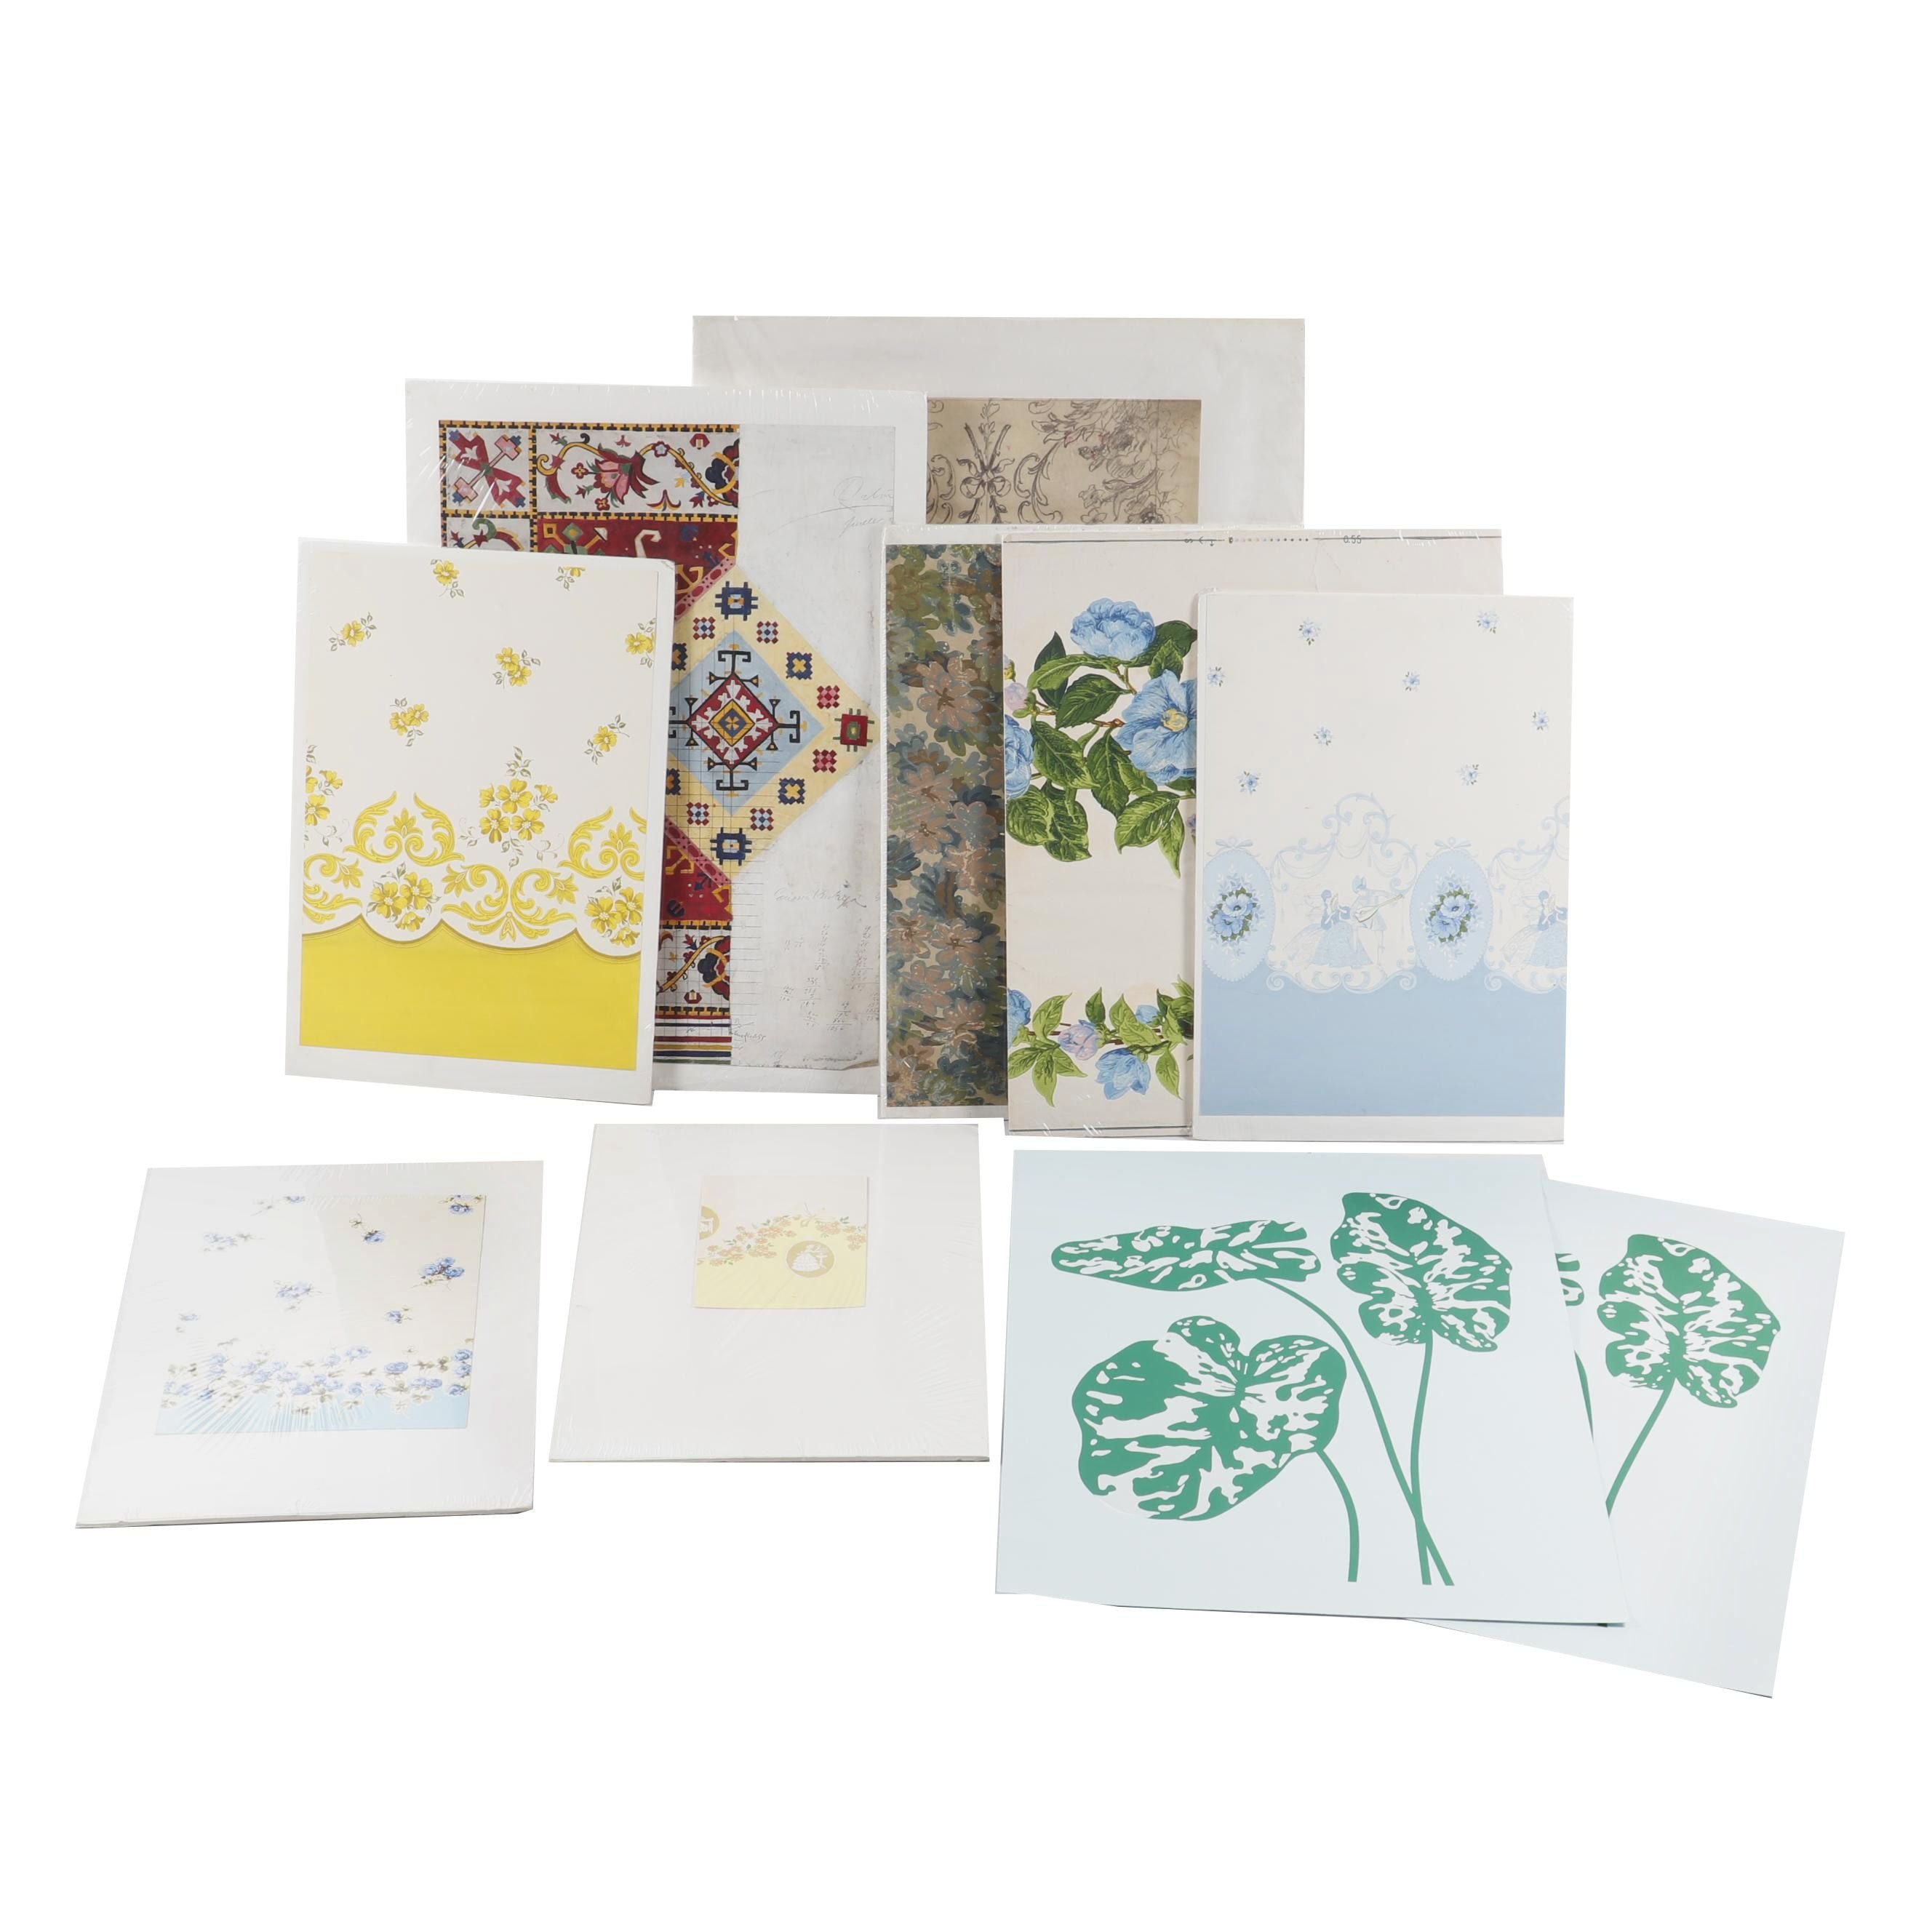 Vintage Pieces of Wallpaper and Design Proof